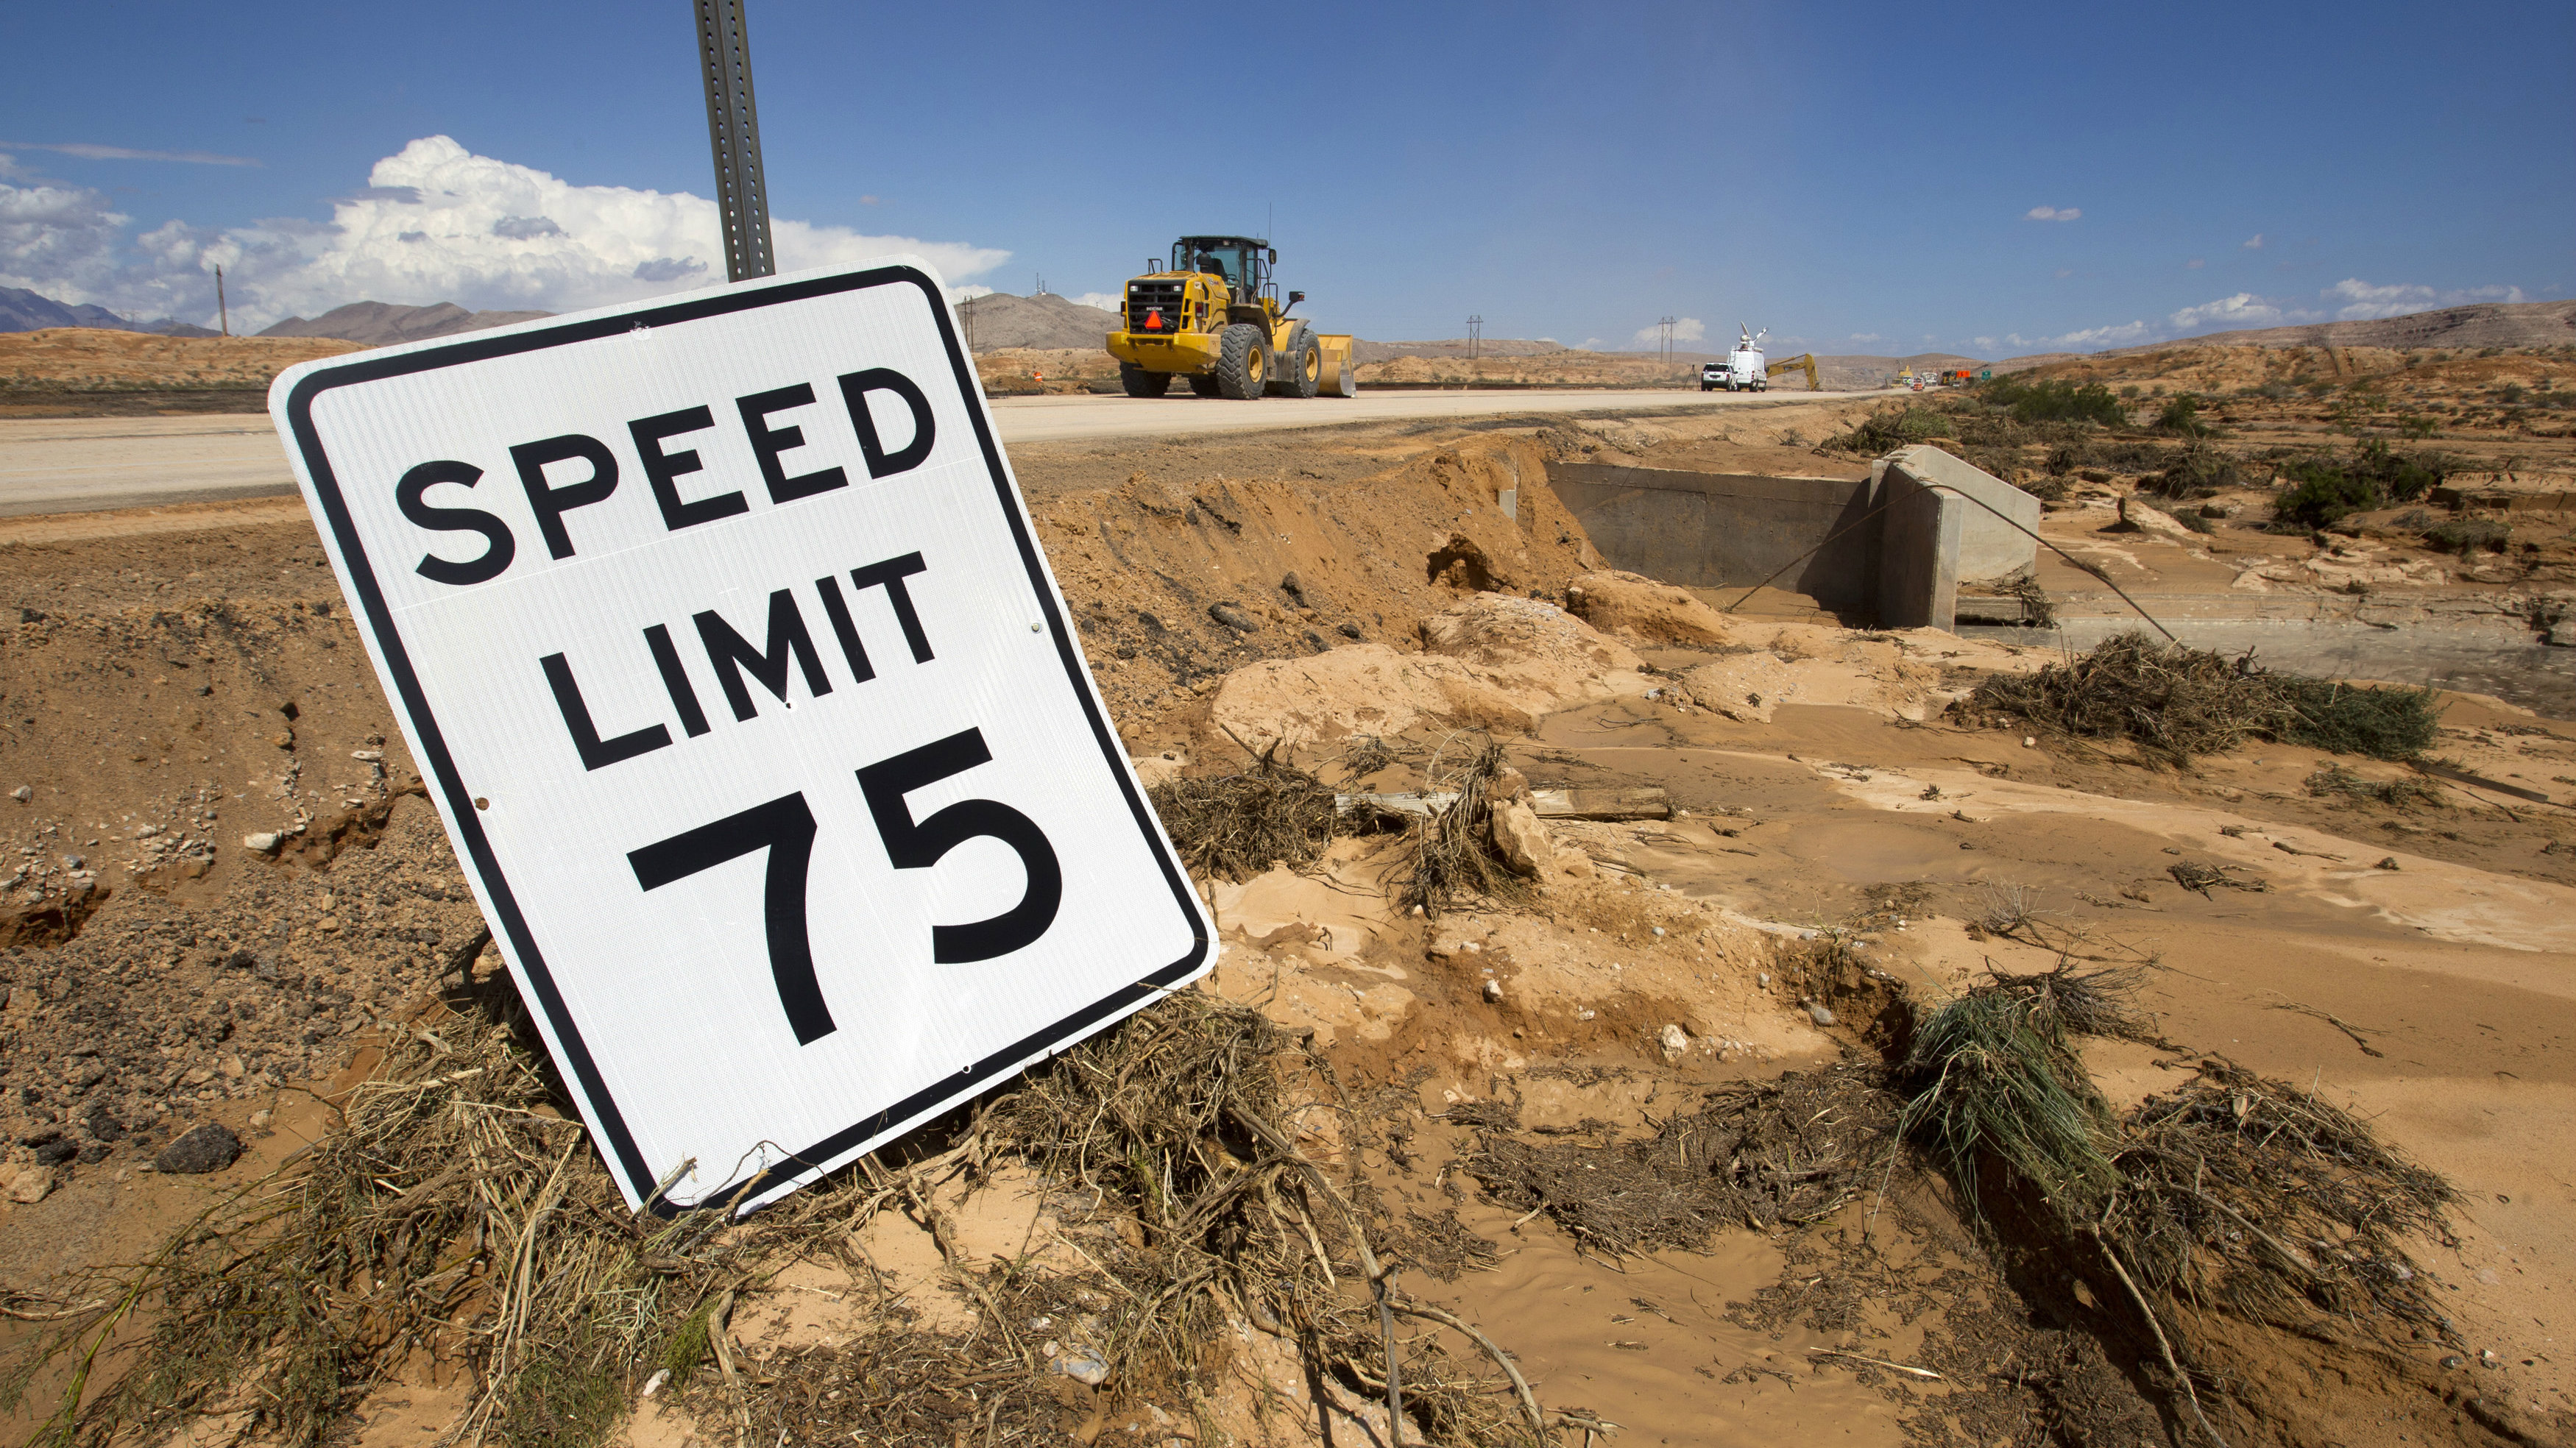 A speed limit sign is pictured by the side of Interstate 15 near Moapa, Nevada September 9, 2014. About 1 mile (1.6km) of freeway was severely damaged by the runoff from Monday's storm. The Nevada Department of Transportation expects to have two lanes open by the weekend, a spokesman said. REUTERS/Las Vegas Sun/Steve Marcus (UNITED STATES - Tags: TRANSPORT DISASTER ENVIRONMENT)